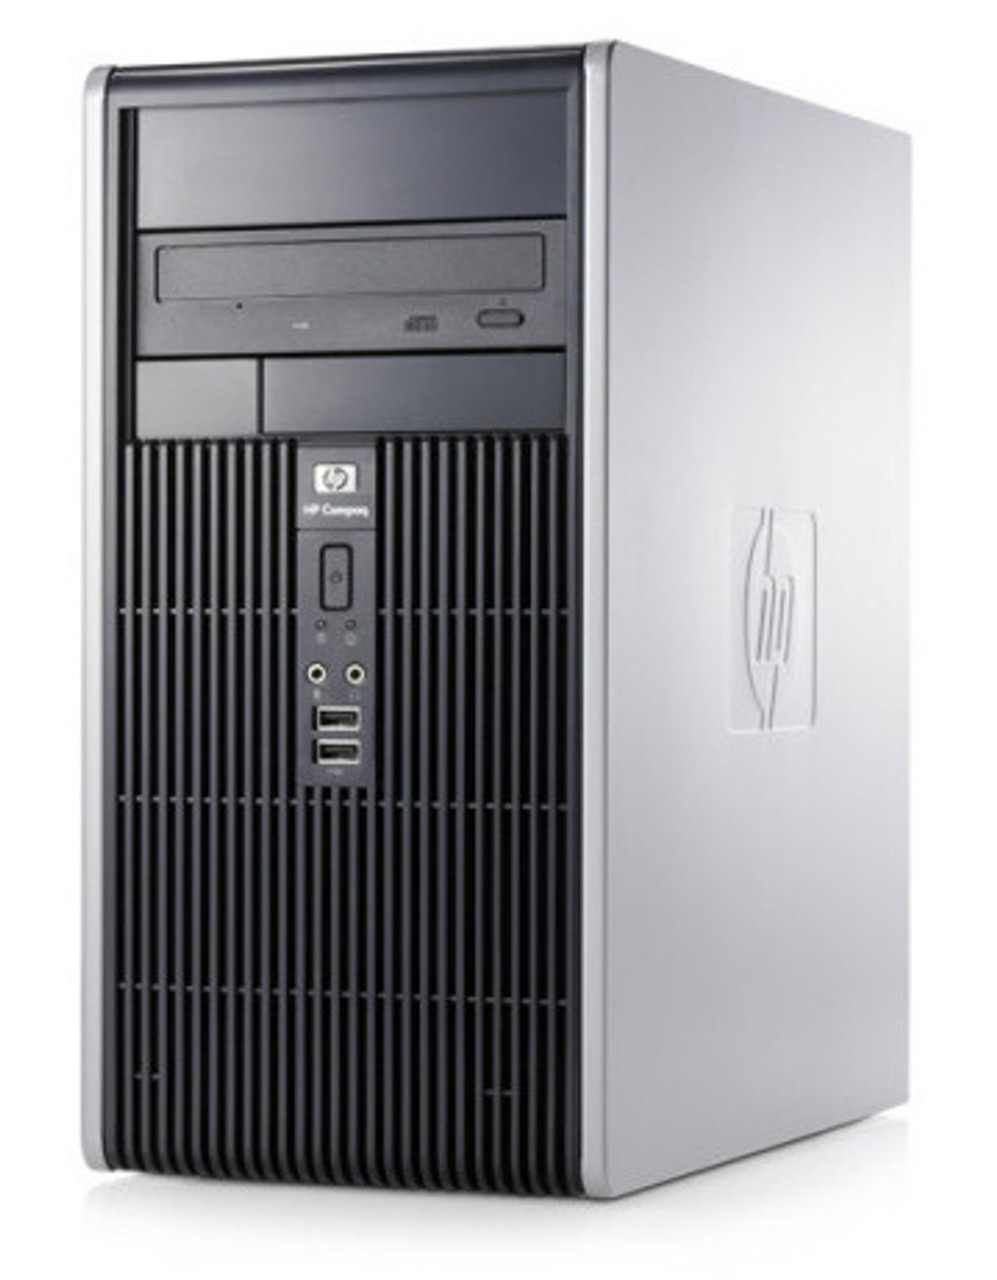 HP Compaq DC5700 Tower Intel Core 2 Duo 2.2GHz, 3GB Ram, 160GB HDD, CDRW-DVD, Windows 7 Home Premium 32 Desktop Computer